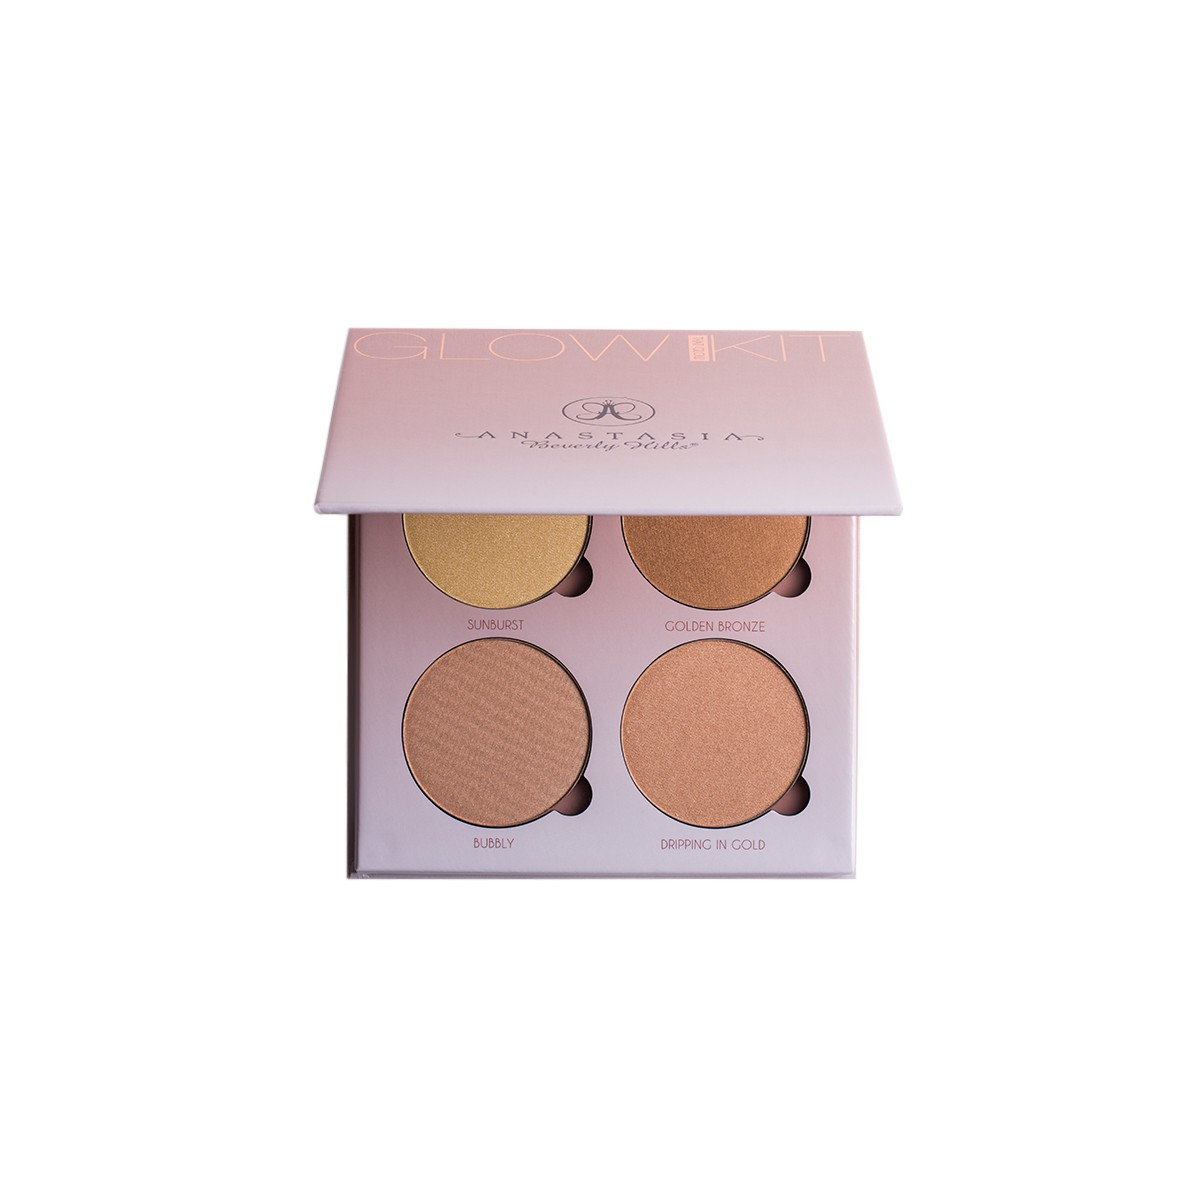 Anastasia Beverly Hills - Sunkissed Glow Kit